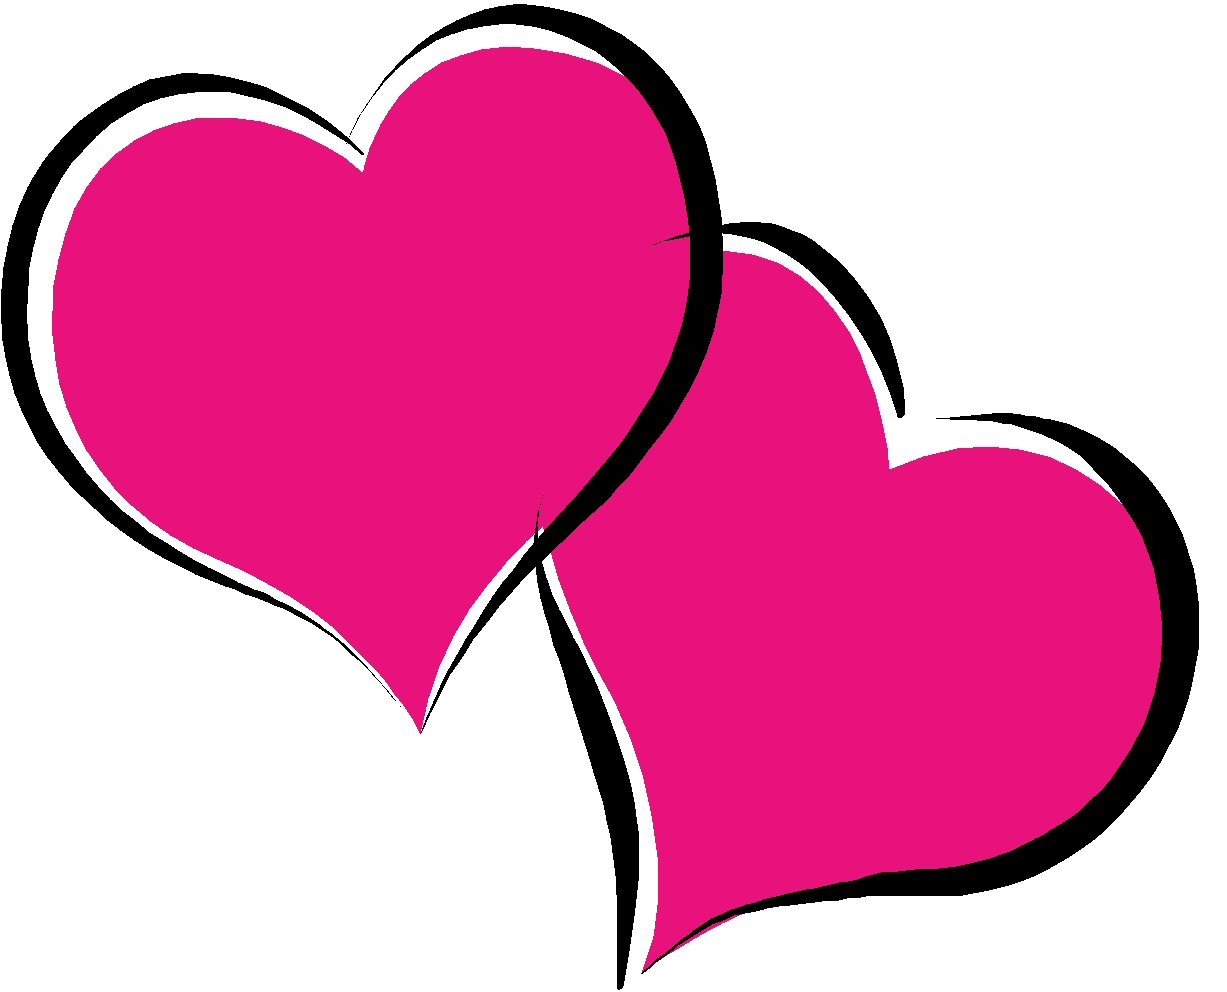 Pink love heart clipart - ClipartFest-Pink love heart clipart - ClipartFest-10